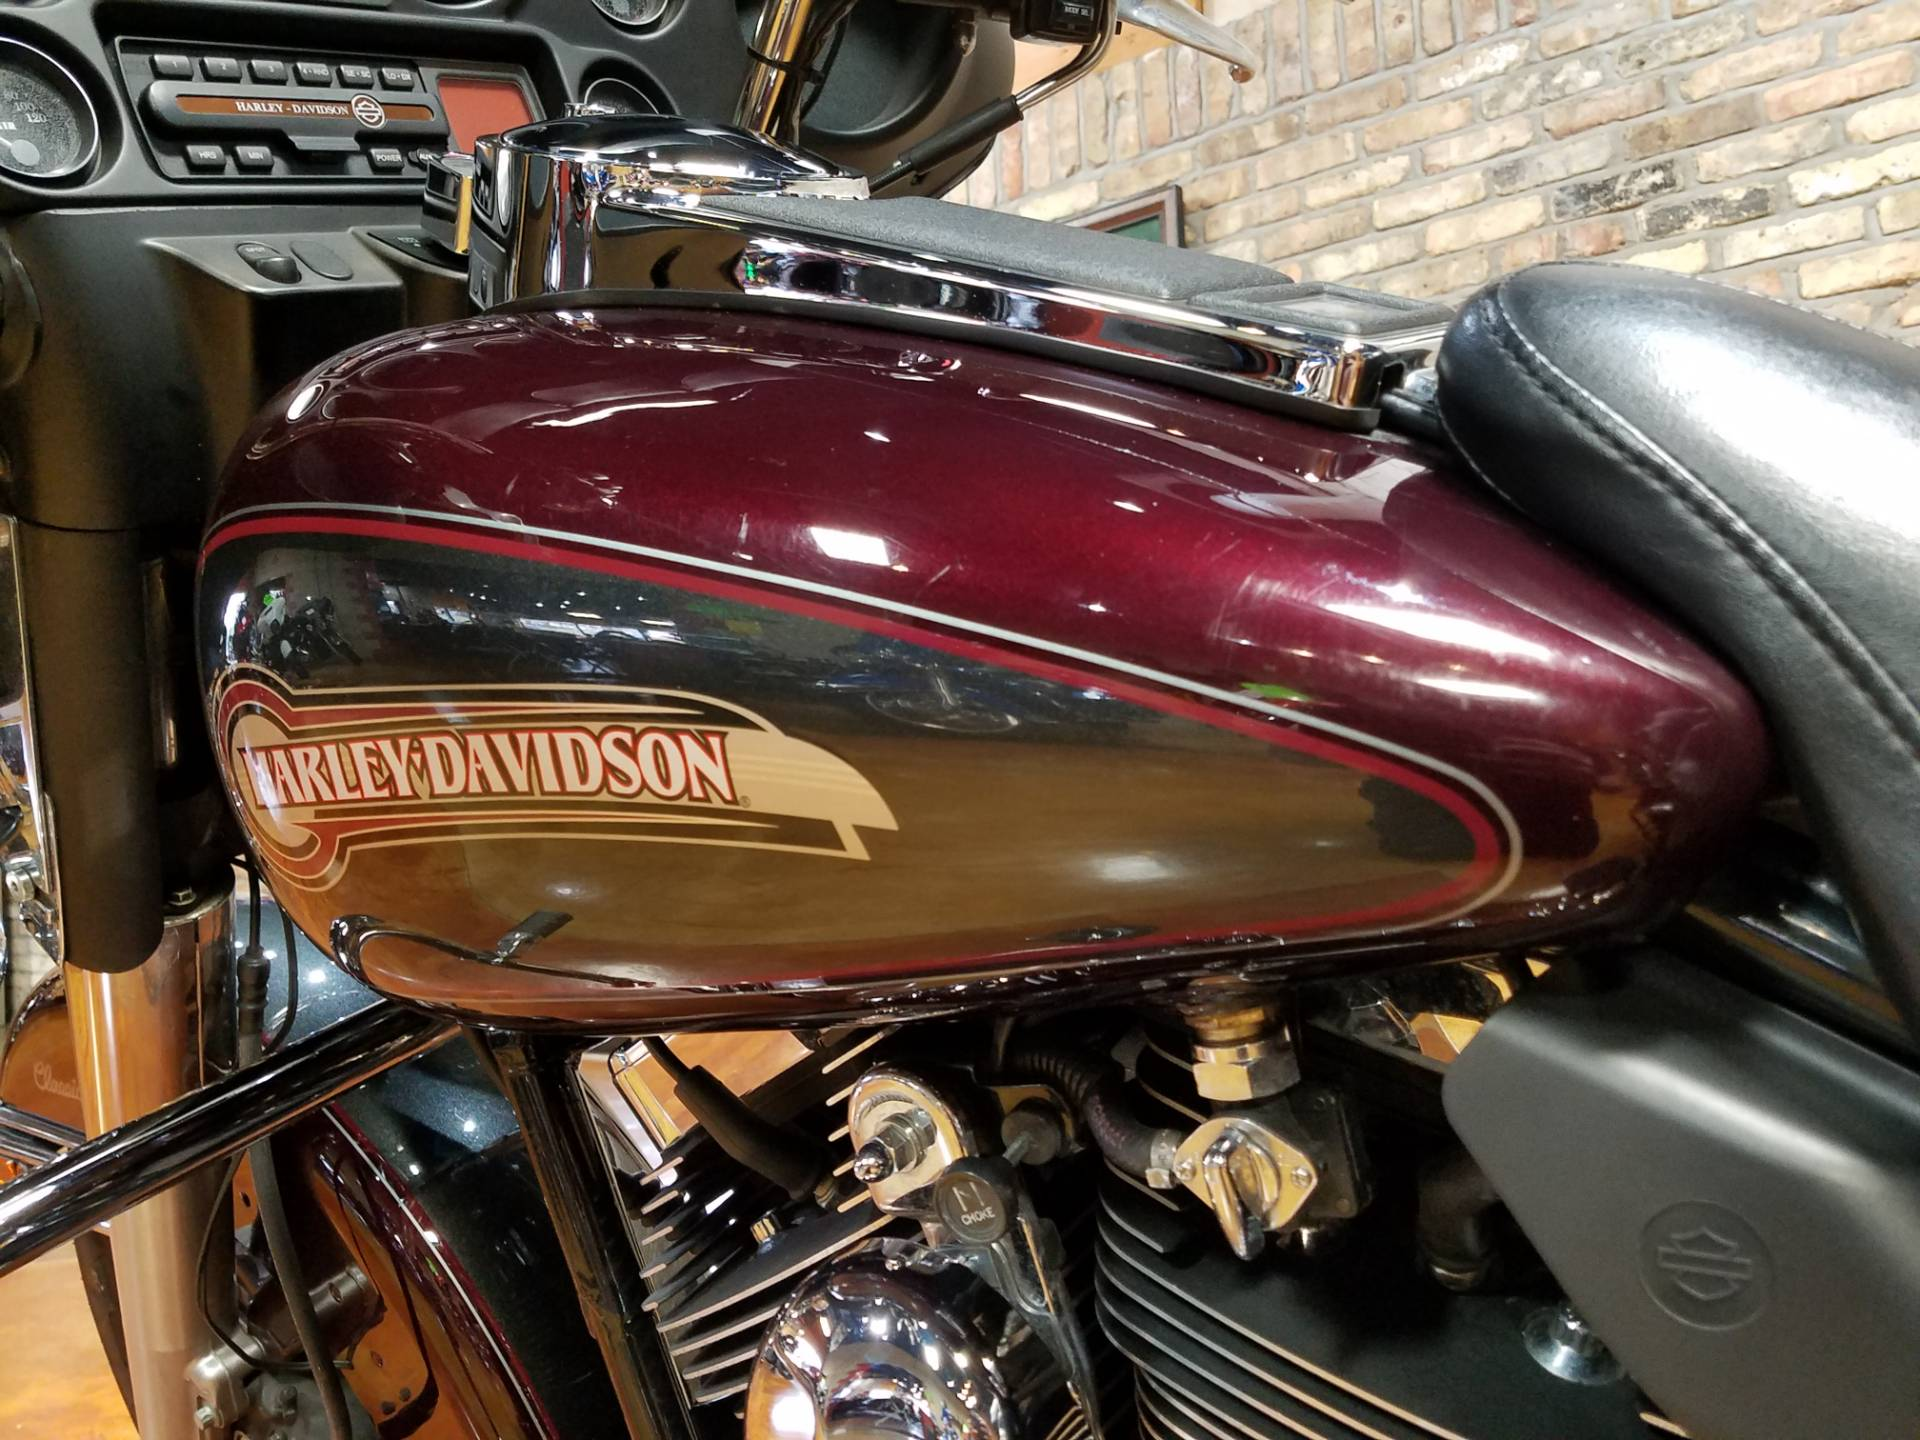 2005 Harley-Davidson FLHTC/FLHTCI Electra Glide® Classic in Big Bend, Wisconsin - Photo 40